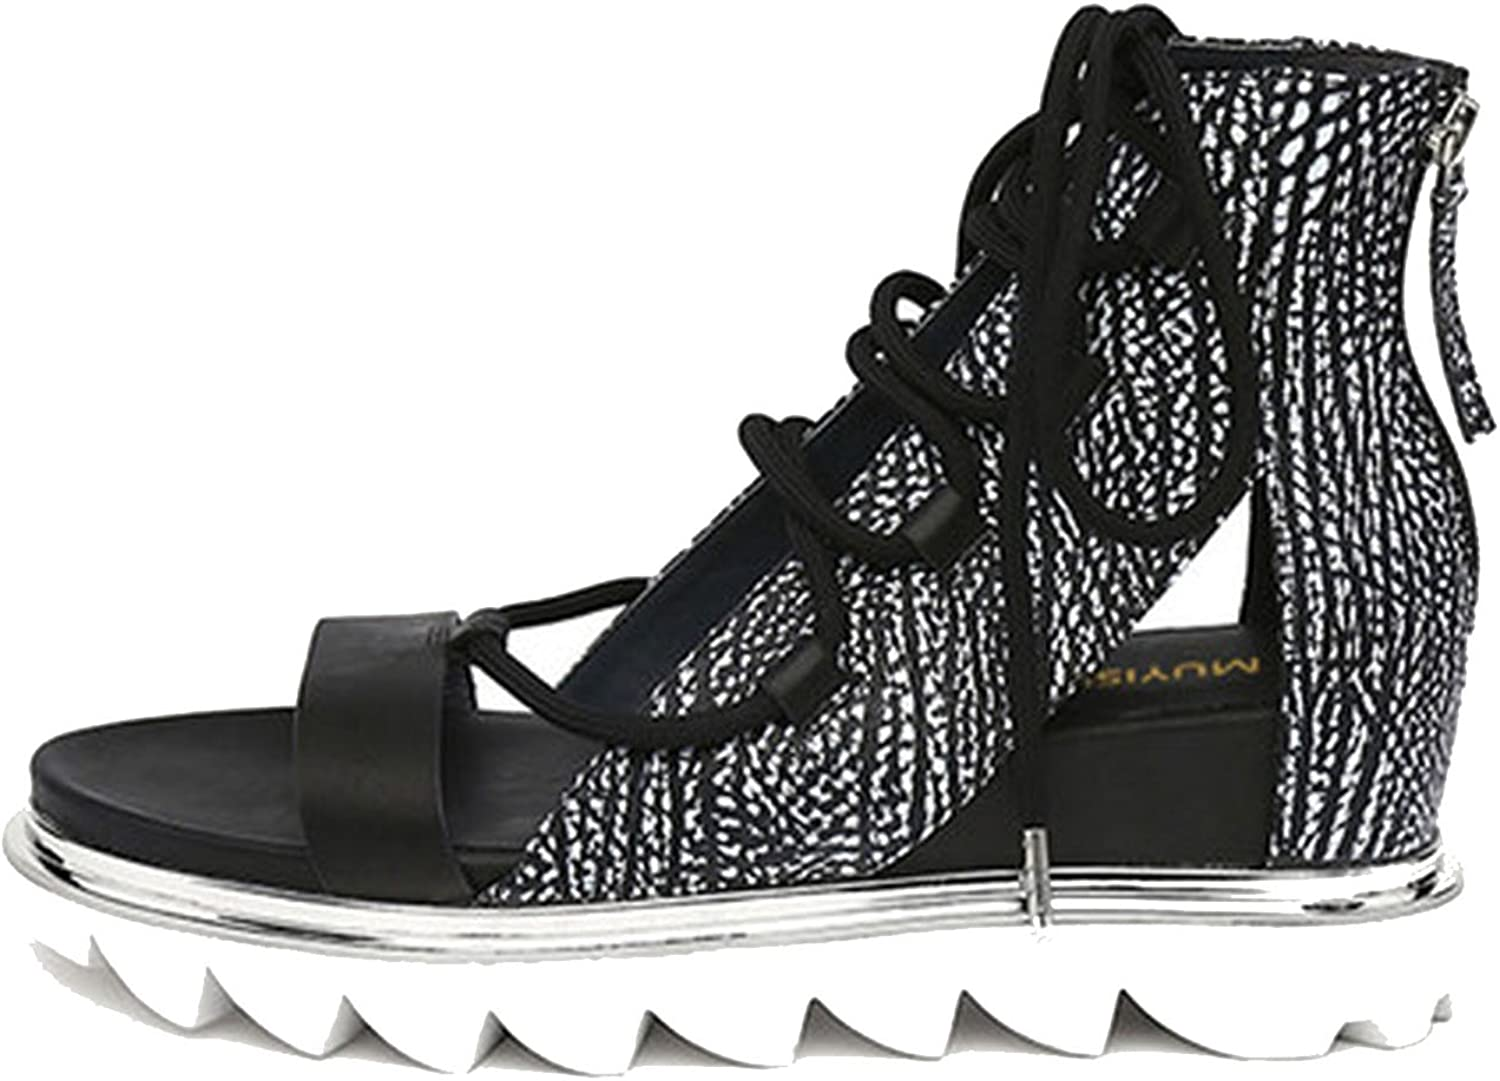 Running-sun Candy color Sandals Height Increasing Women Gladiator Sandal Platform Wedge Woman Creepers